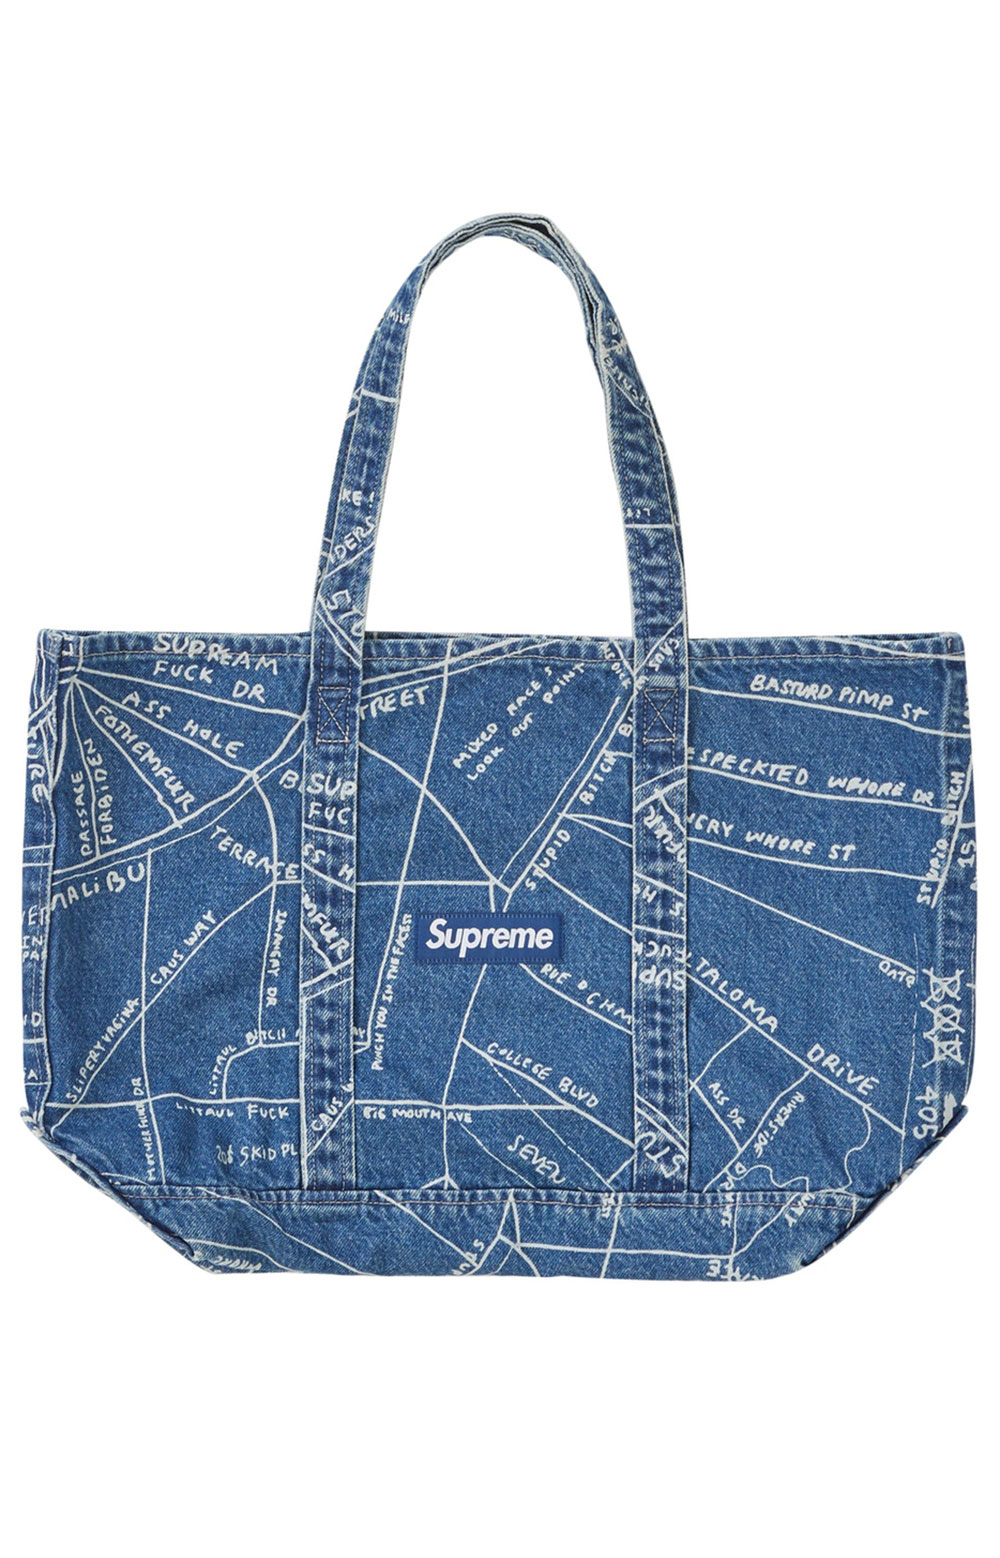 Gonz Map Tote Bag - Blue